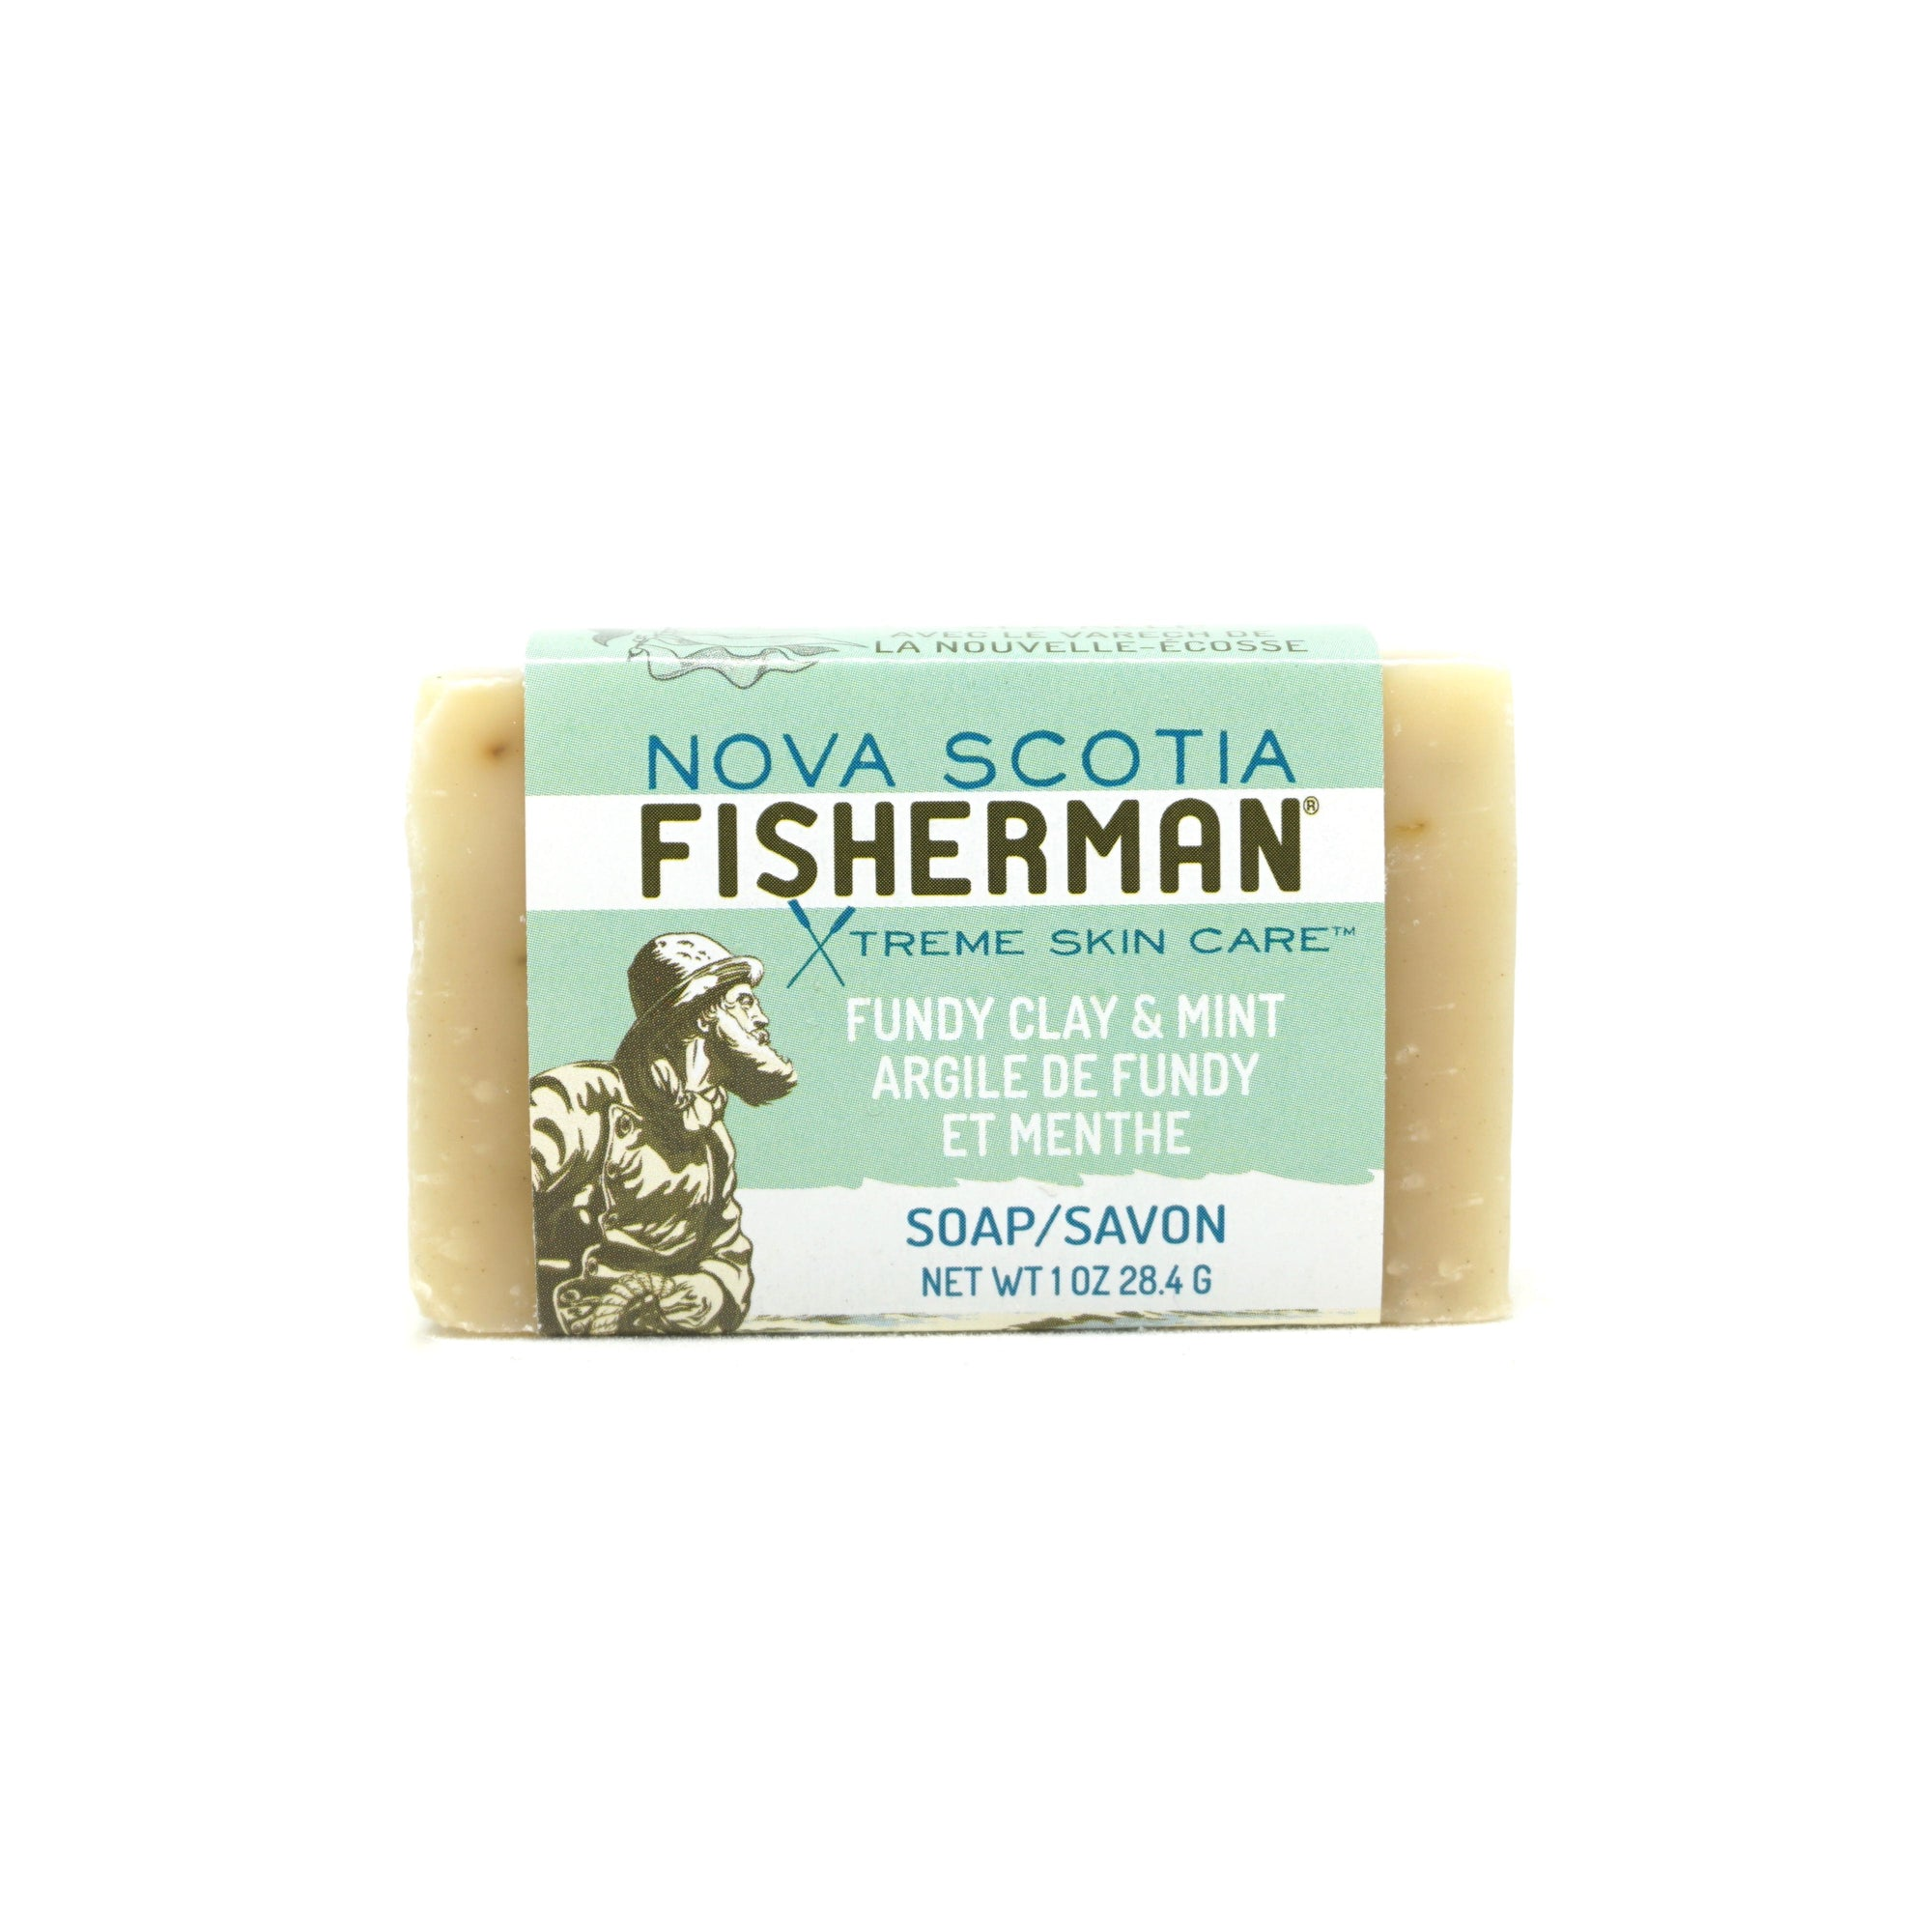 Hand & Face Soap Bar - Fundy Clay & Mint - Nova Scotia Fisherman Sea Kelp Skincare